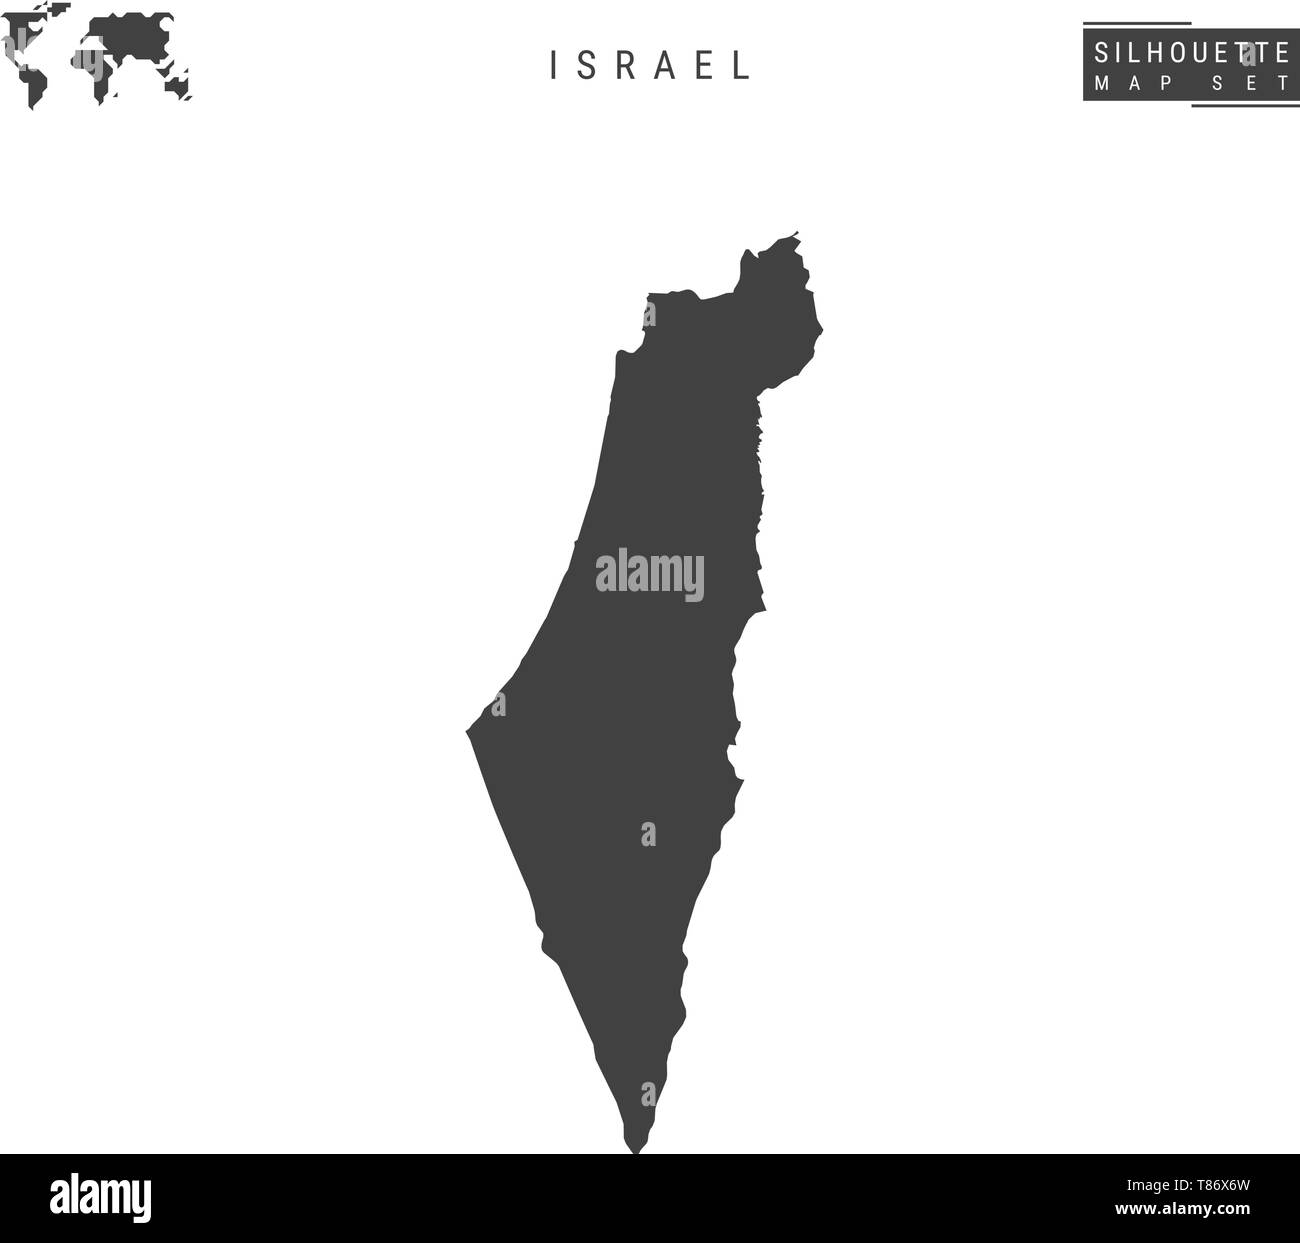 Israel Blank Vector Map Isolated on White Background. High-Detailed Black Silhouette Map of Israel. - Stock Vector